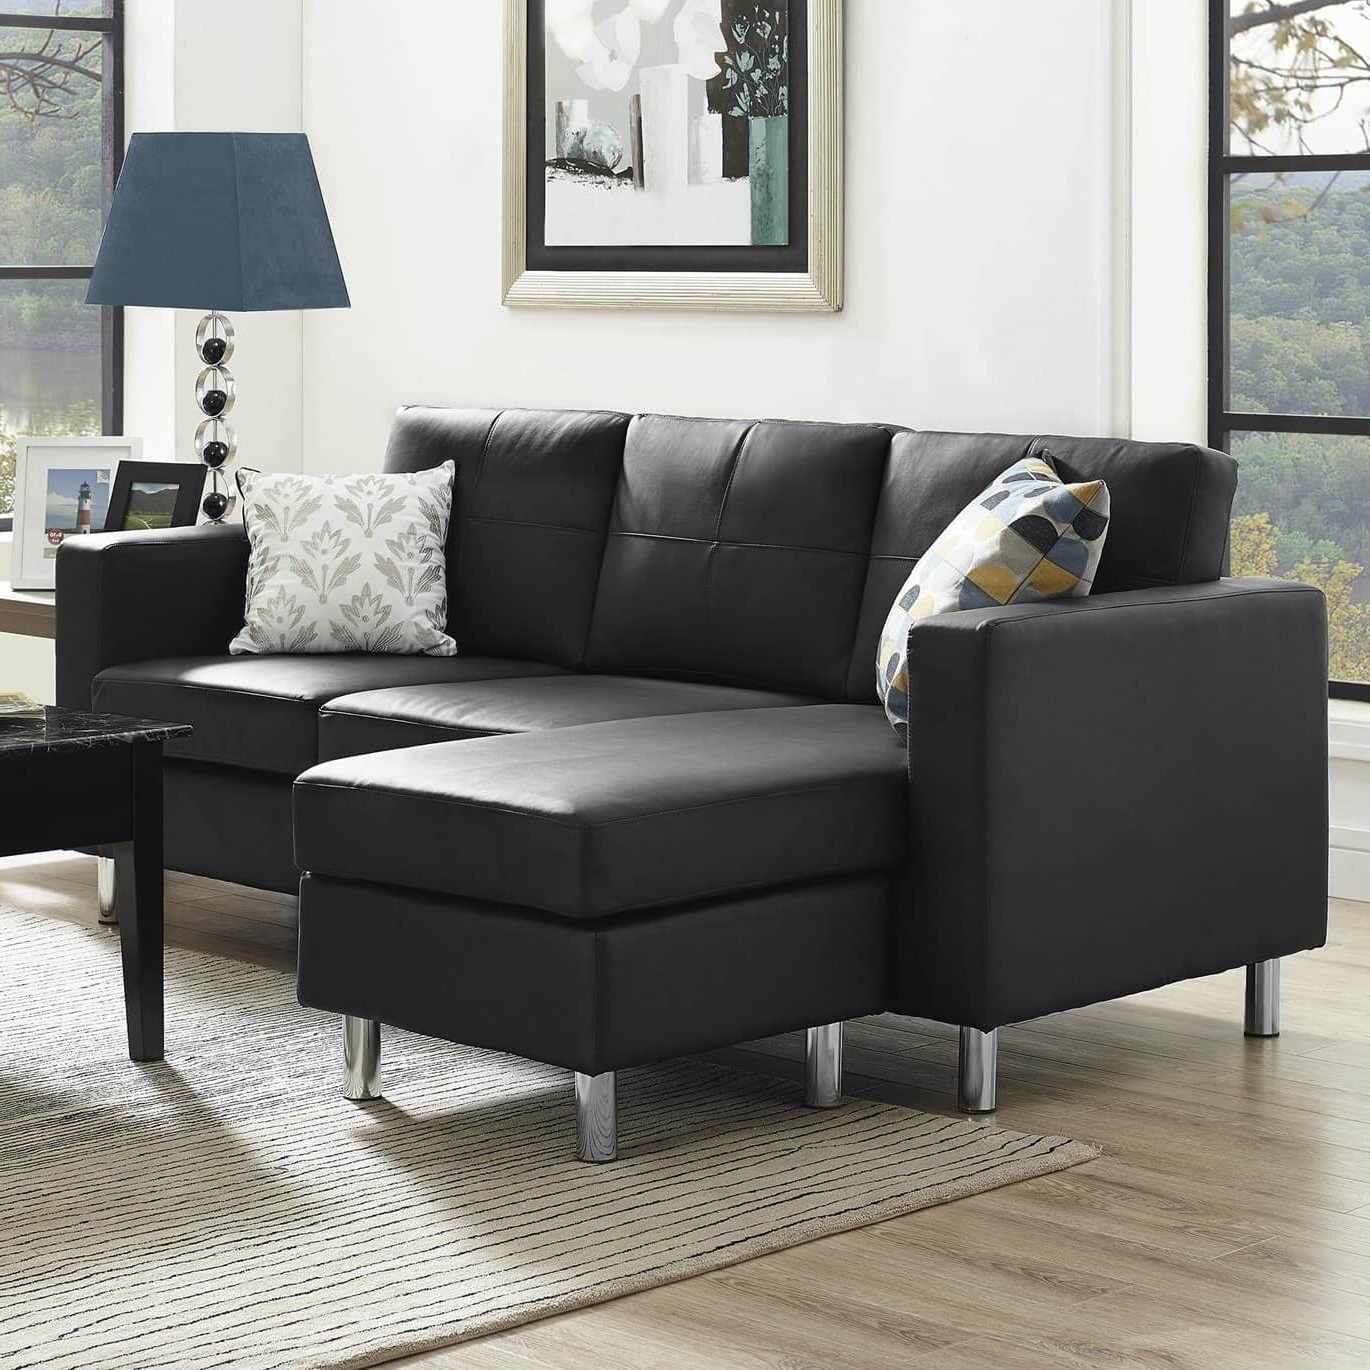 Sectional Sofas Under 500 Inside Fashionable 40 Cheap Sectional Sofas Under $500 For  (View 11 of 20)